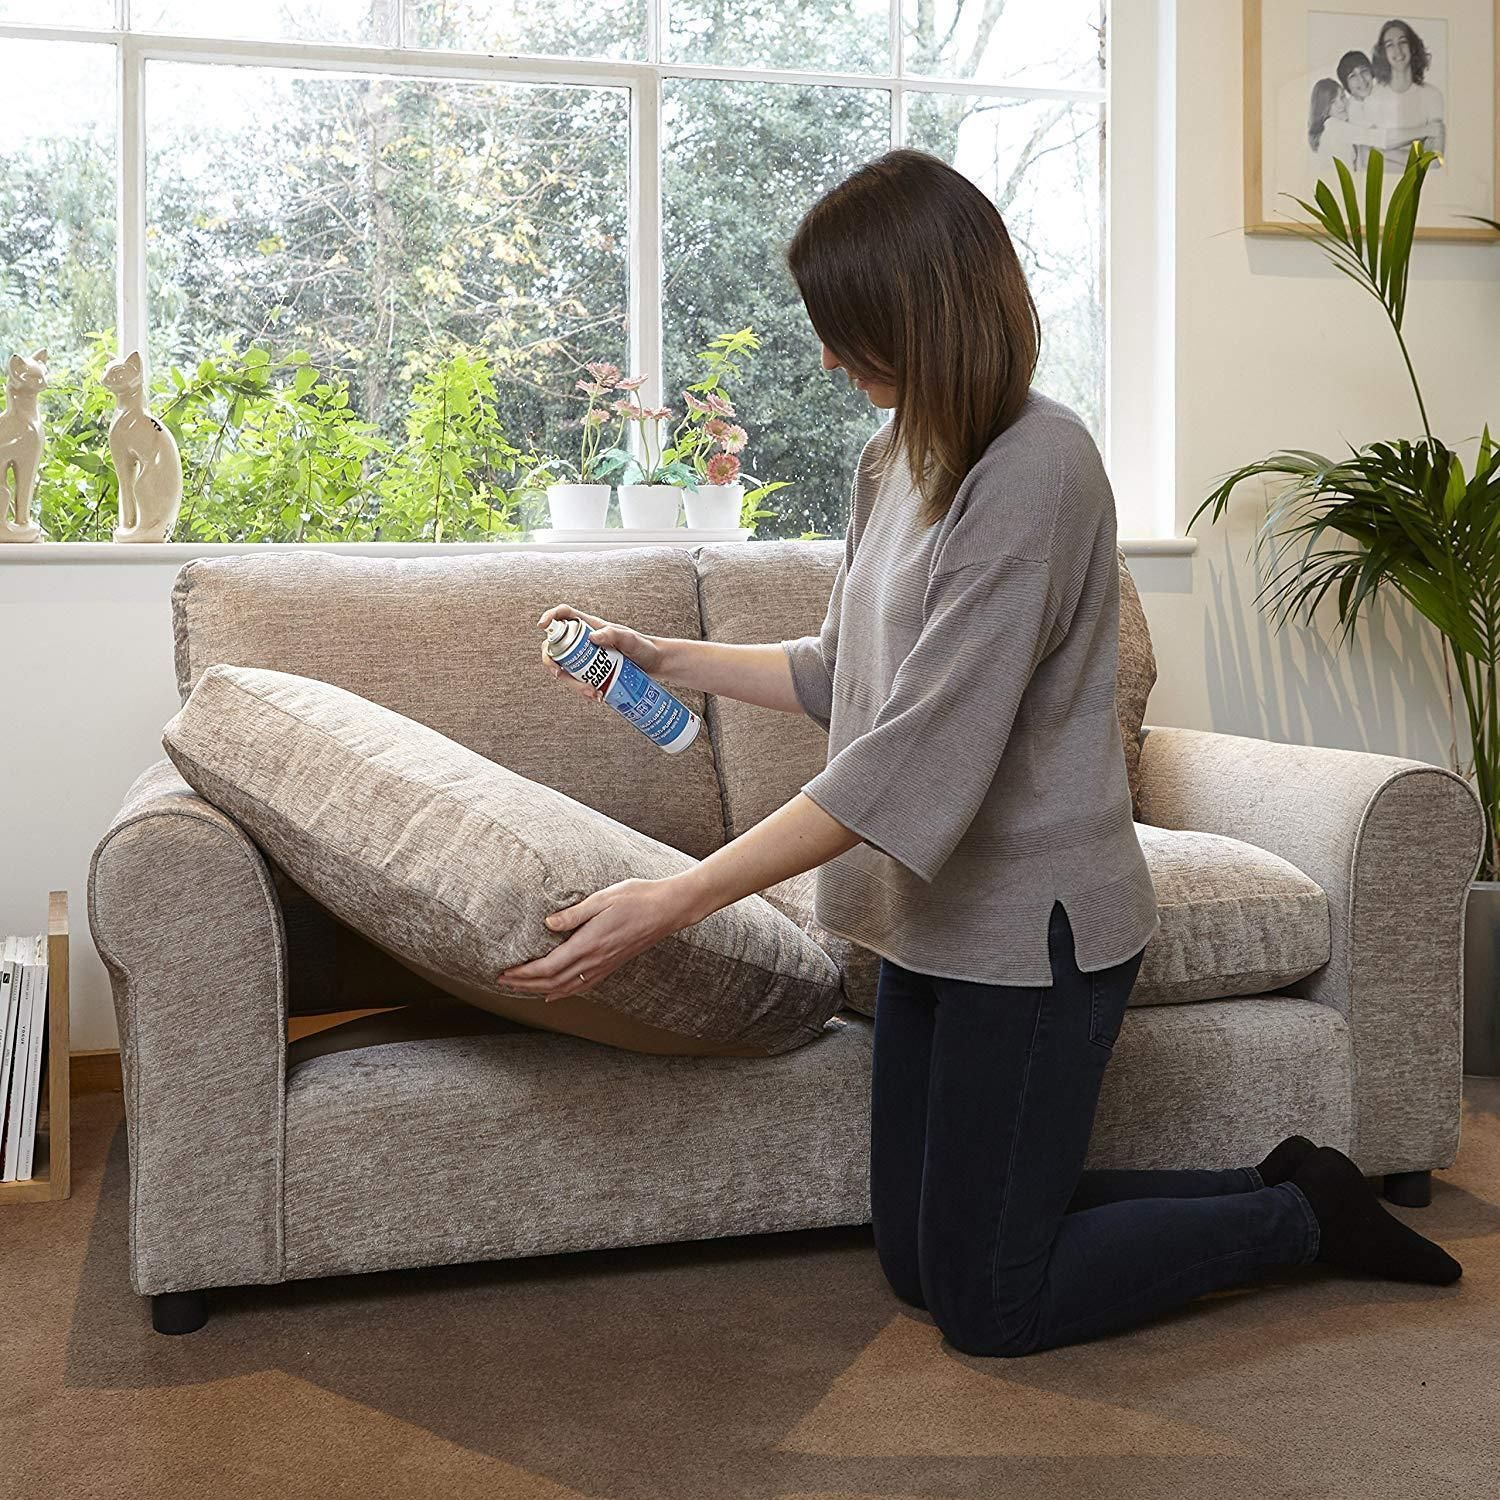 Upholstery Cleaning Services in Avalon Beach